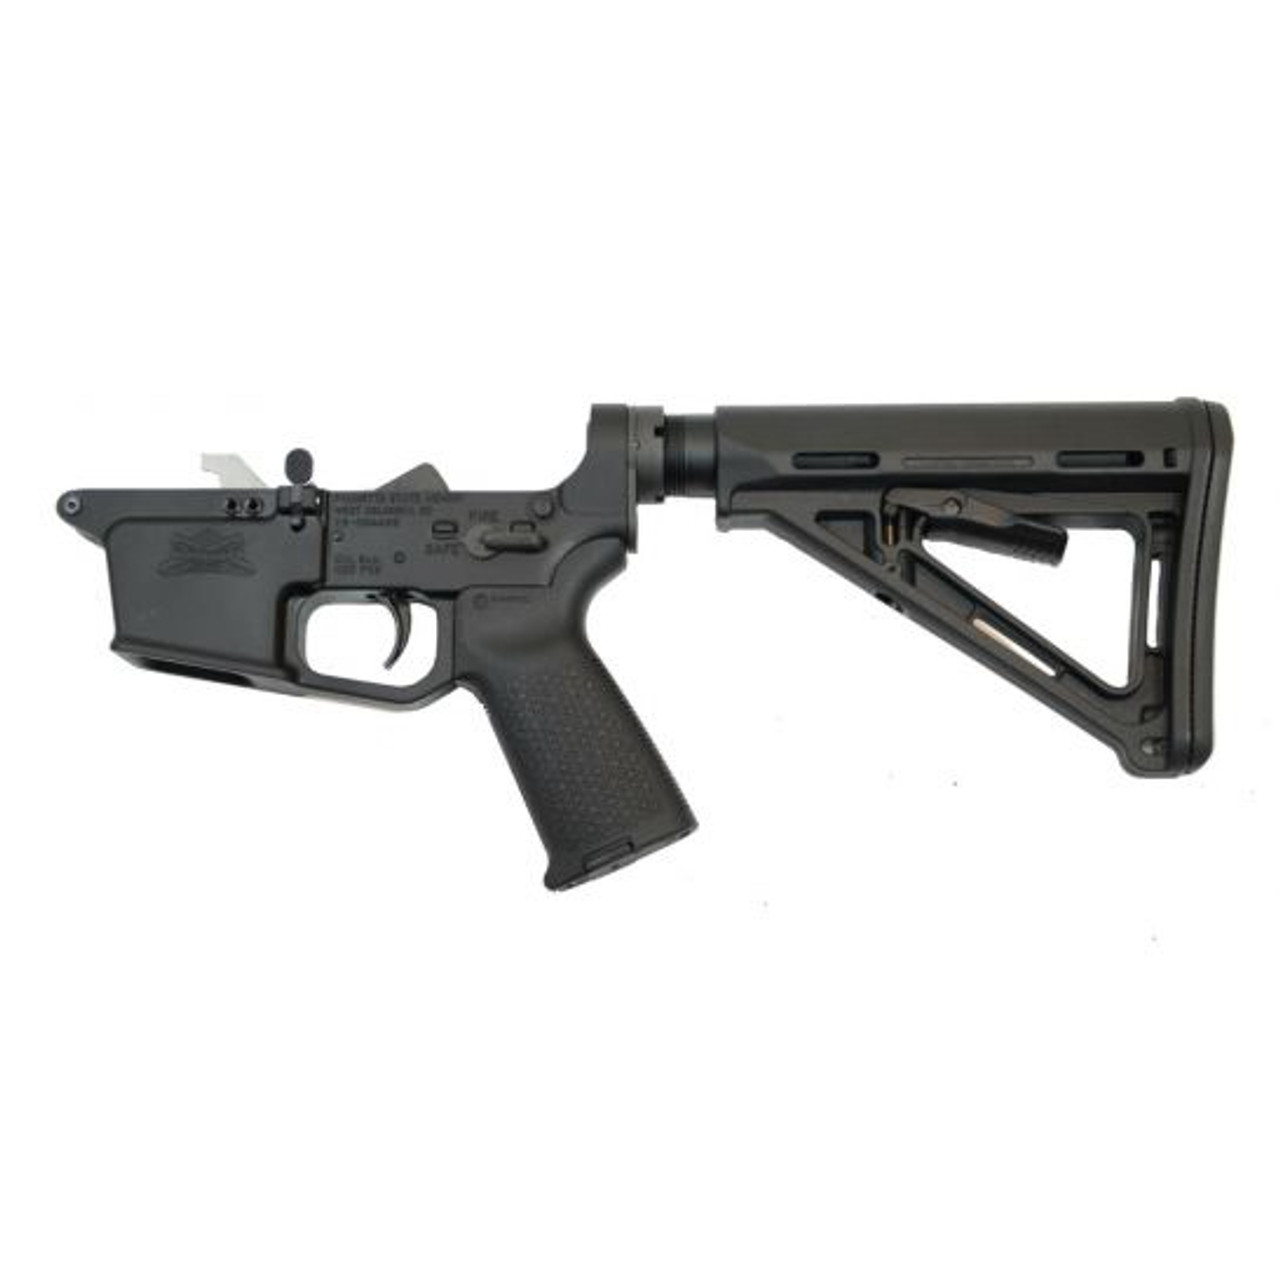 Palmetto State Armory PX-9 Glock Style Complete Lower CALIFORNIA LEGAL - 9mm